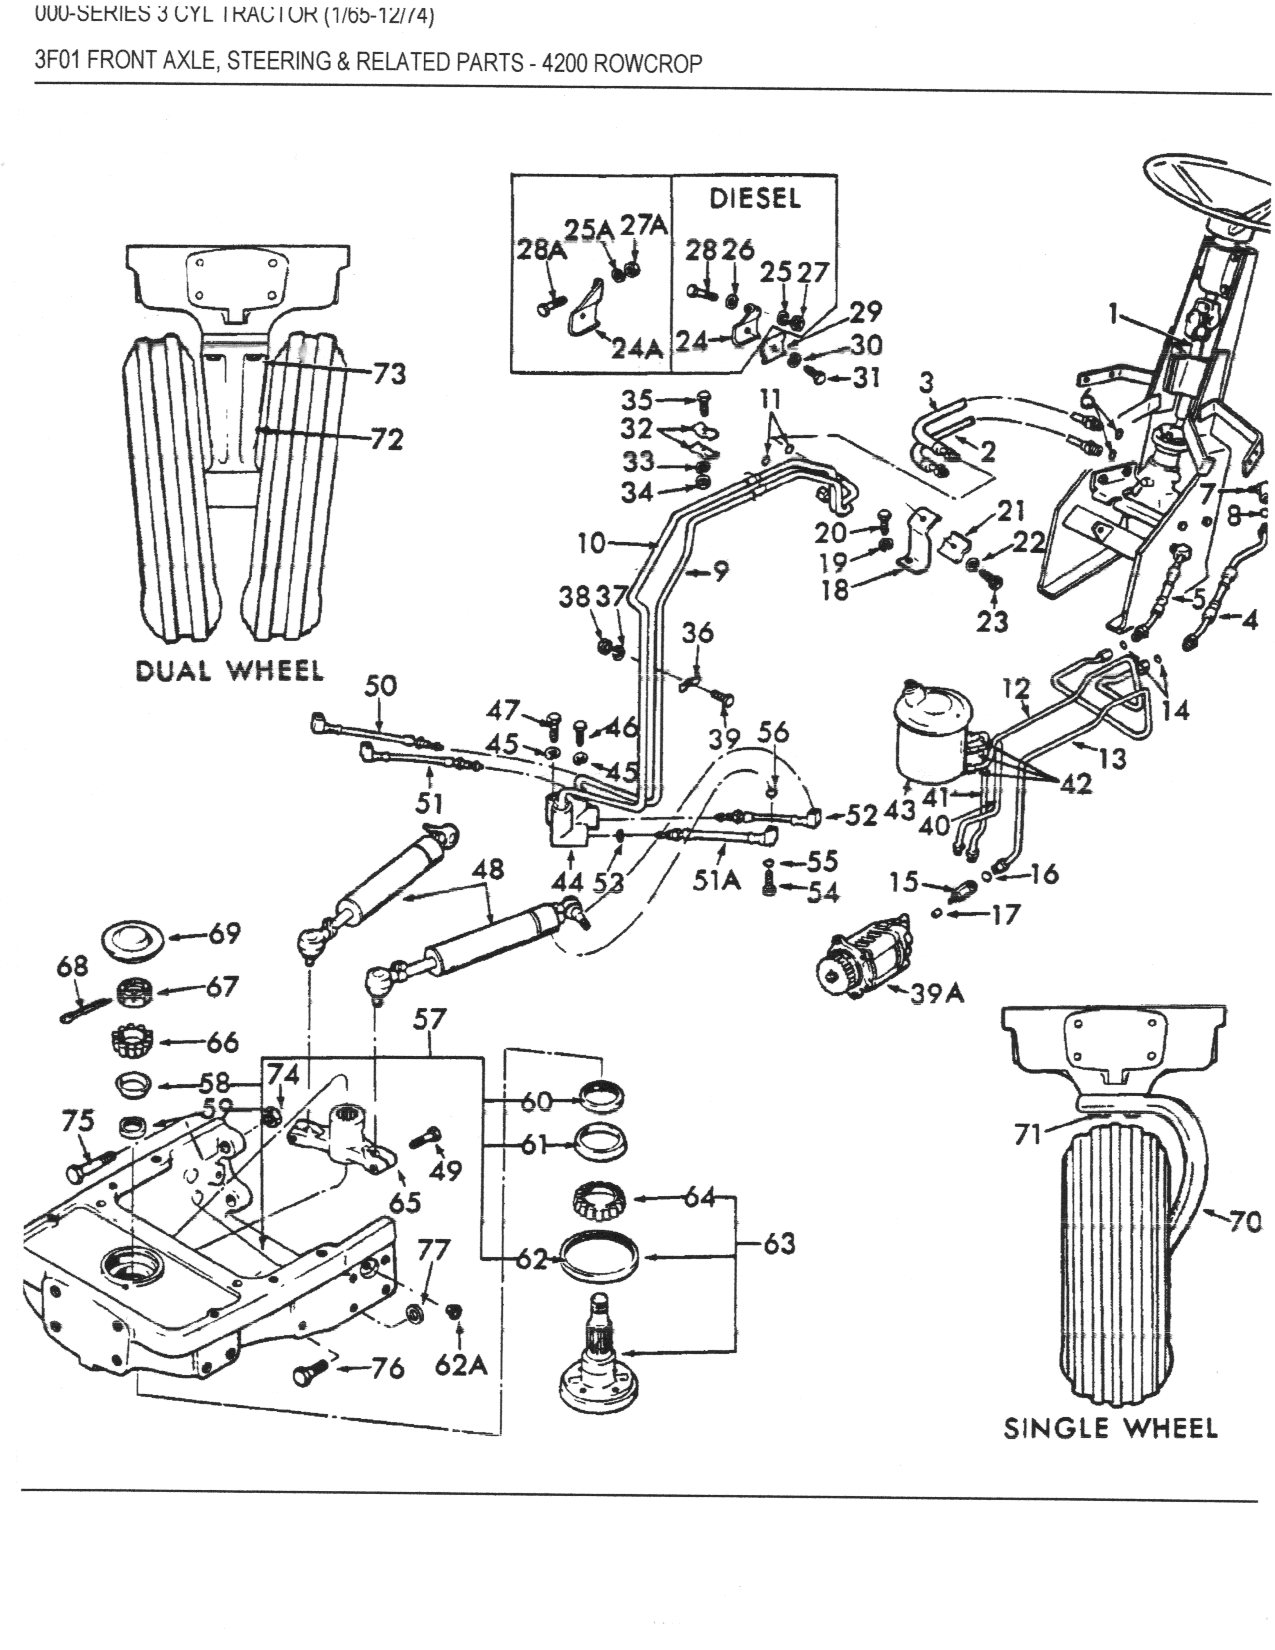 4200002 4200 power steering overflowing yesterday's tractors ford 1710 tractor wiring diagram at gsmportal.co